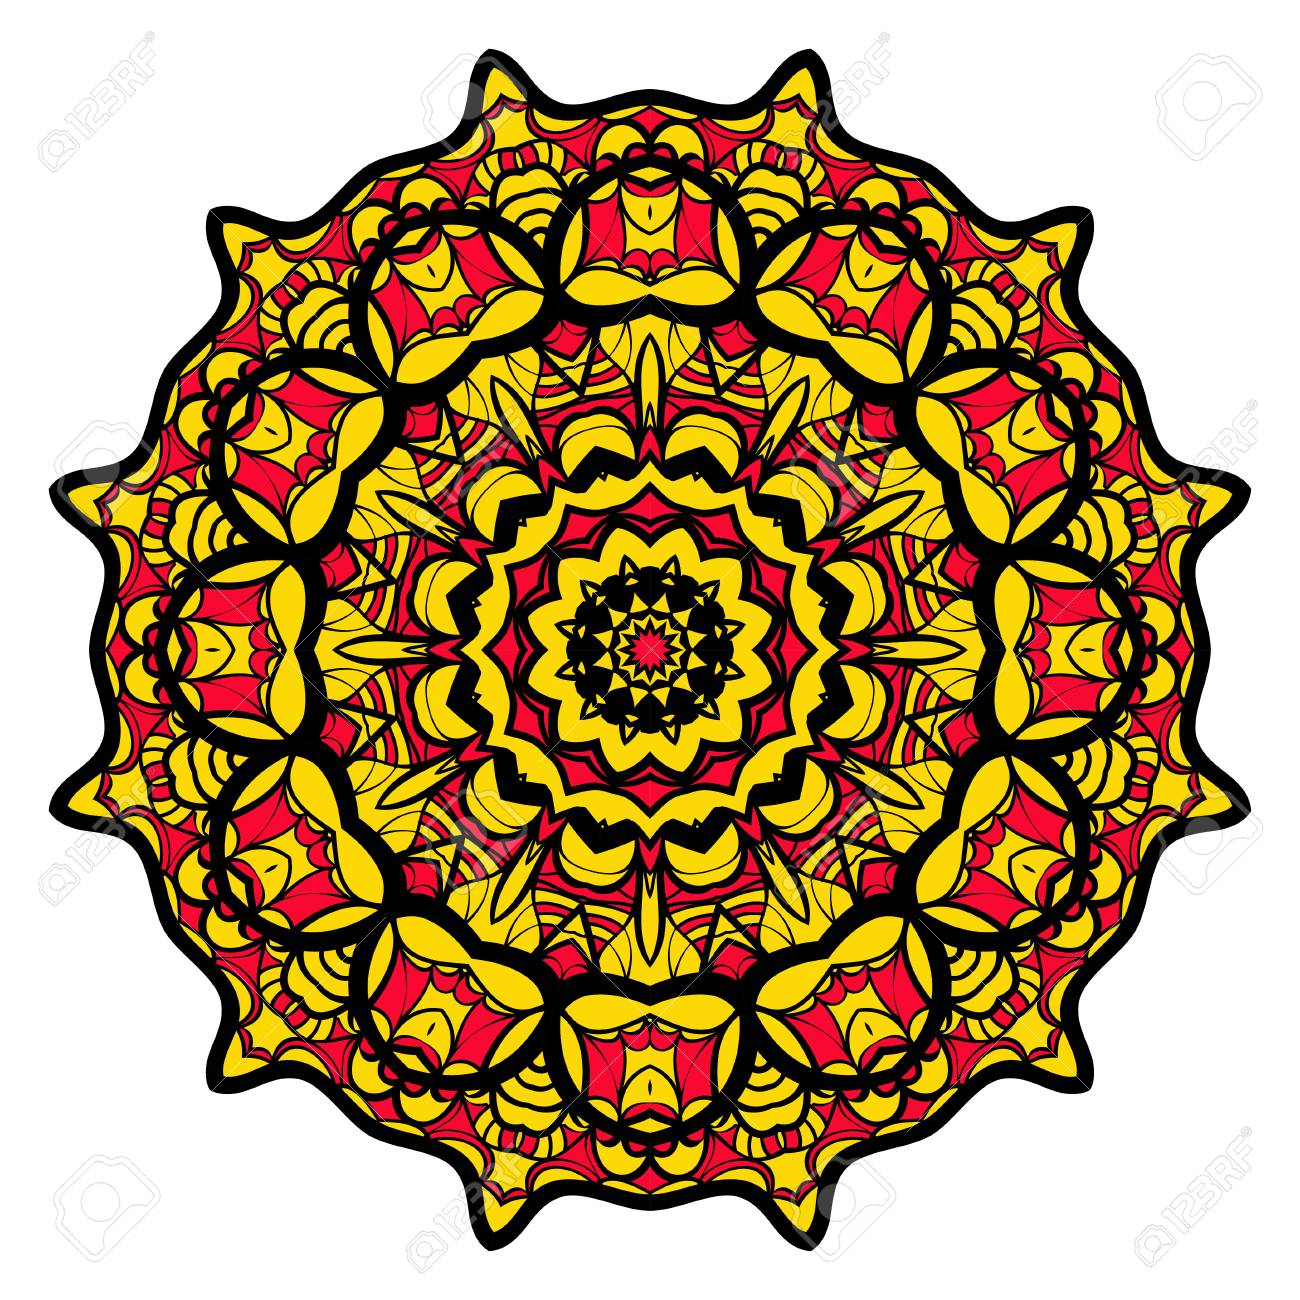 sun color flower mandala energy symbol vector illustration royalty free cliparts vectors and stock illustration image 99353008 sun color flower mandala energy symbol vector illustration royalty free cliparts vectors and stock illustration image 99353008